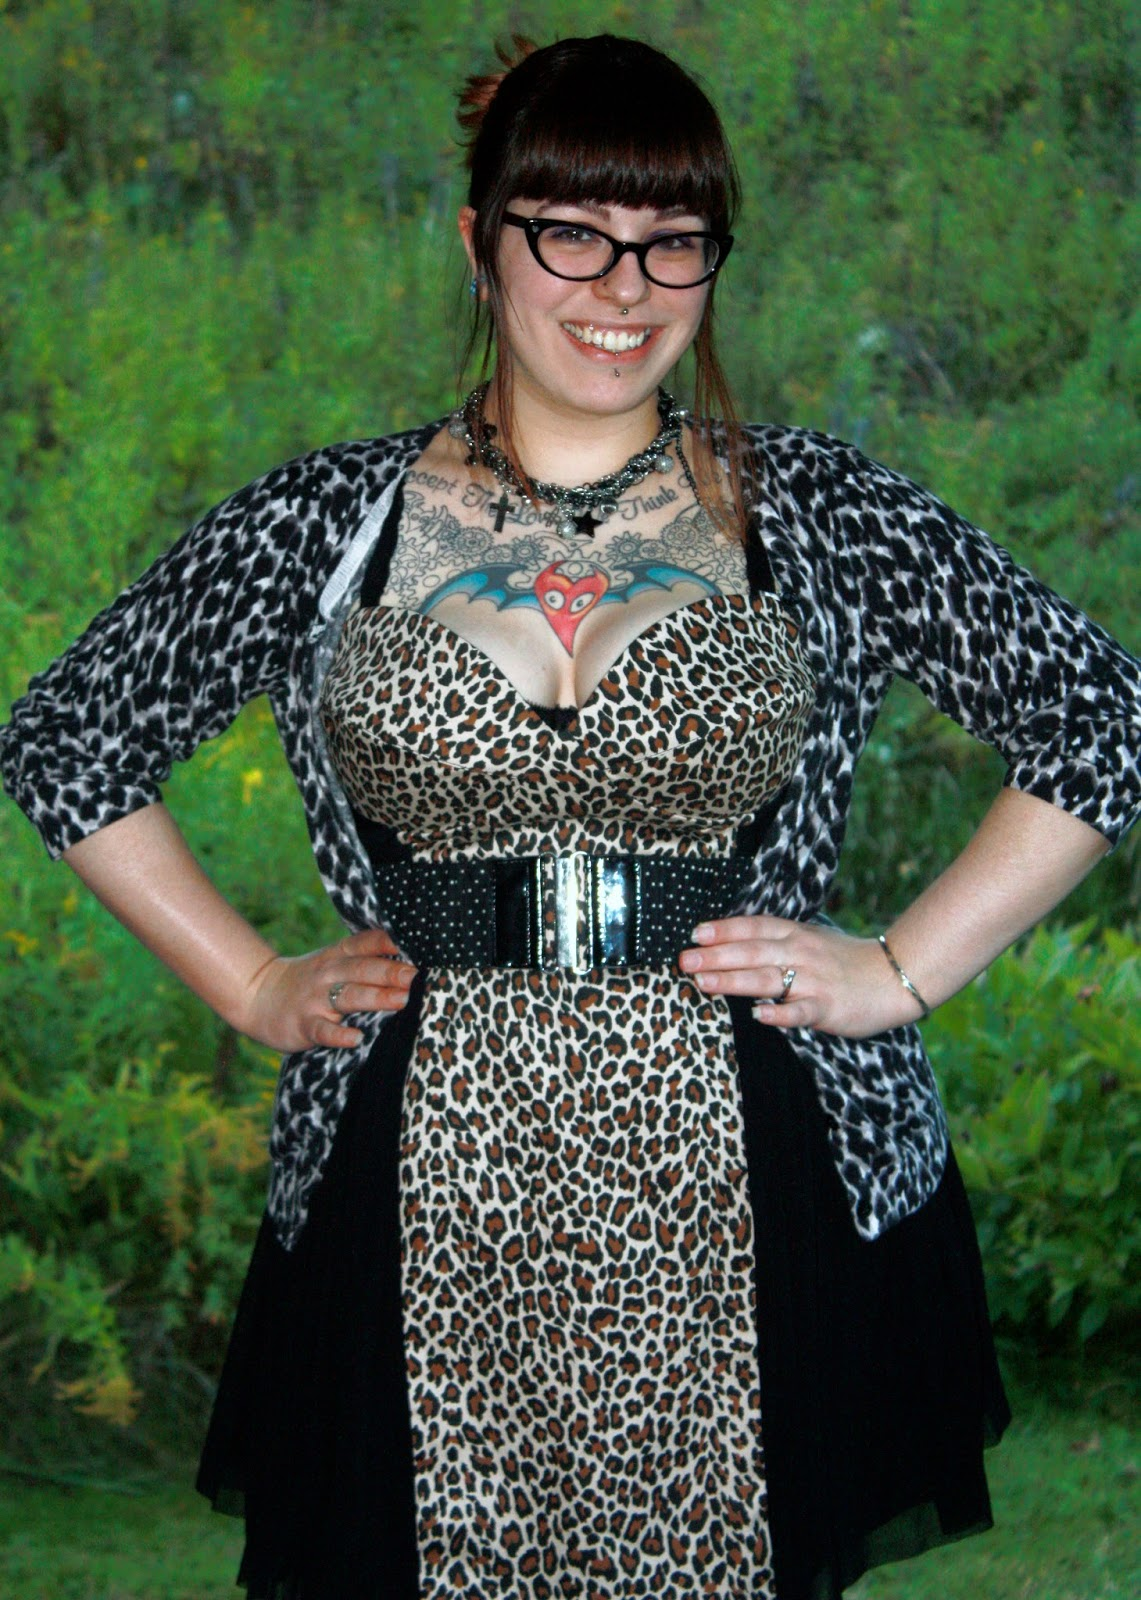 asos, leopard print, target, cardigan, dress, kohls, goodwill, beyond the rack, spiked heels, ootd, outfit of the day, fatshion, leopard print dress, leopard print boots, moth tattoo, vermont